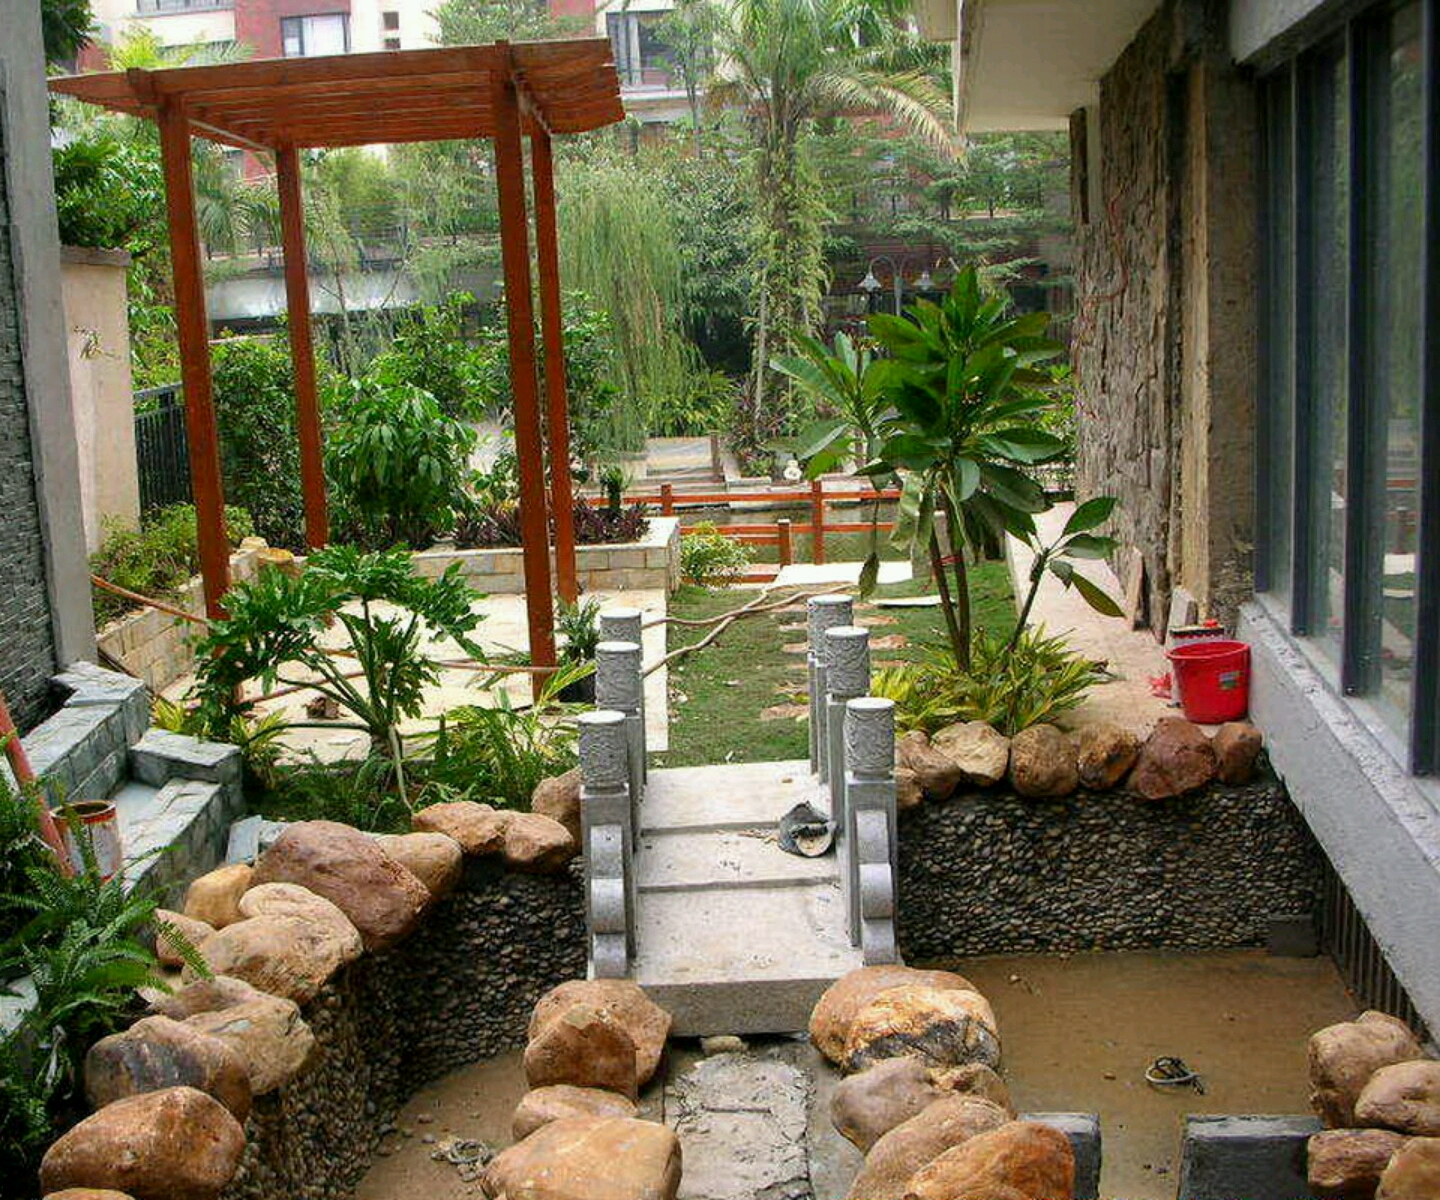 New home designs latest beautiful home gardens designs for Garden ideas images